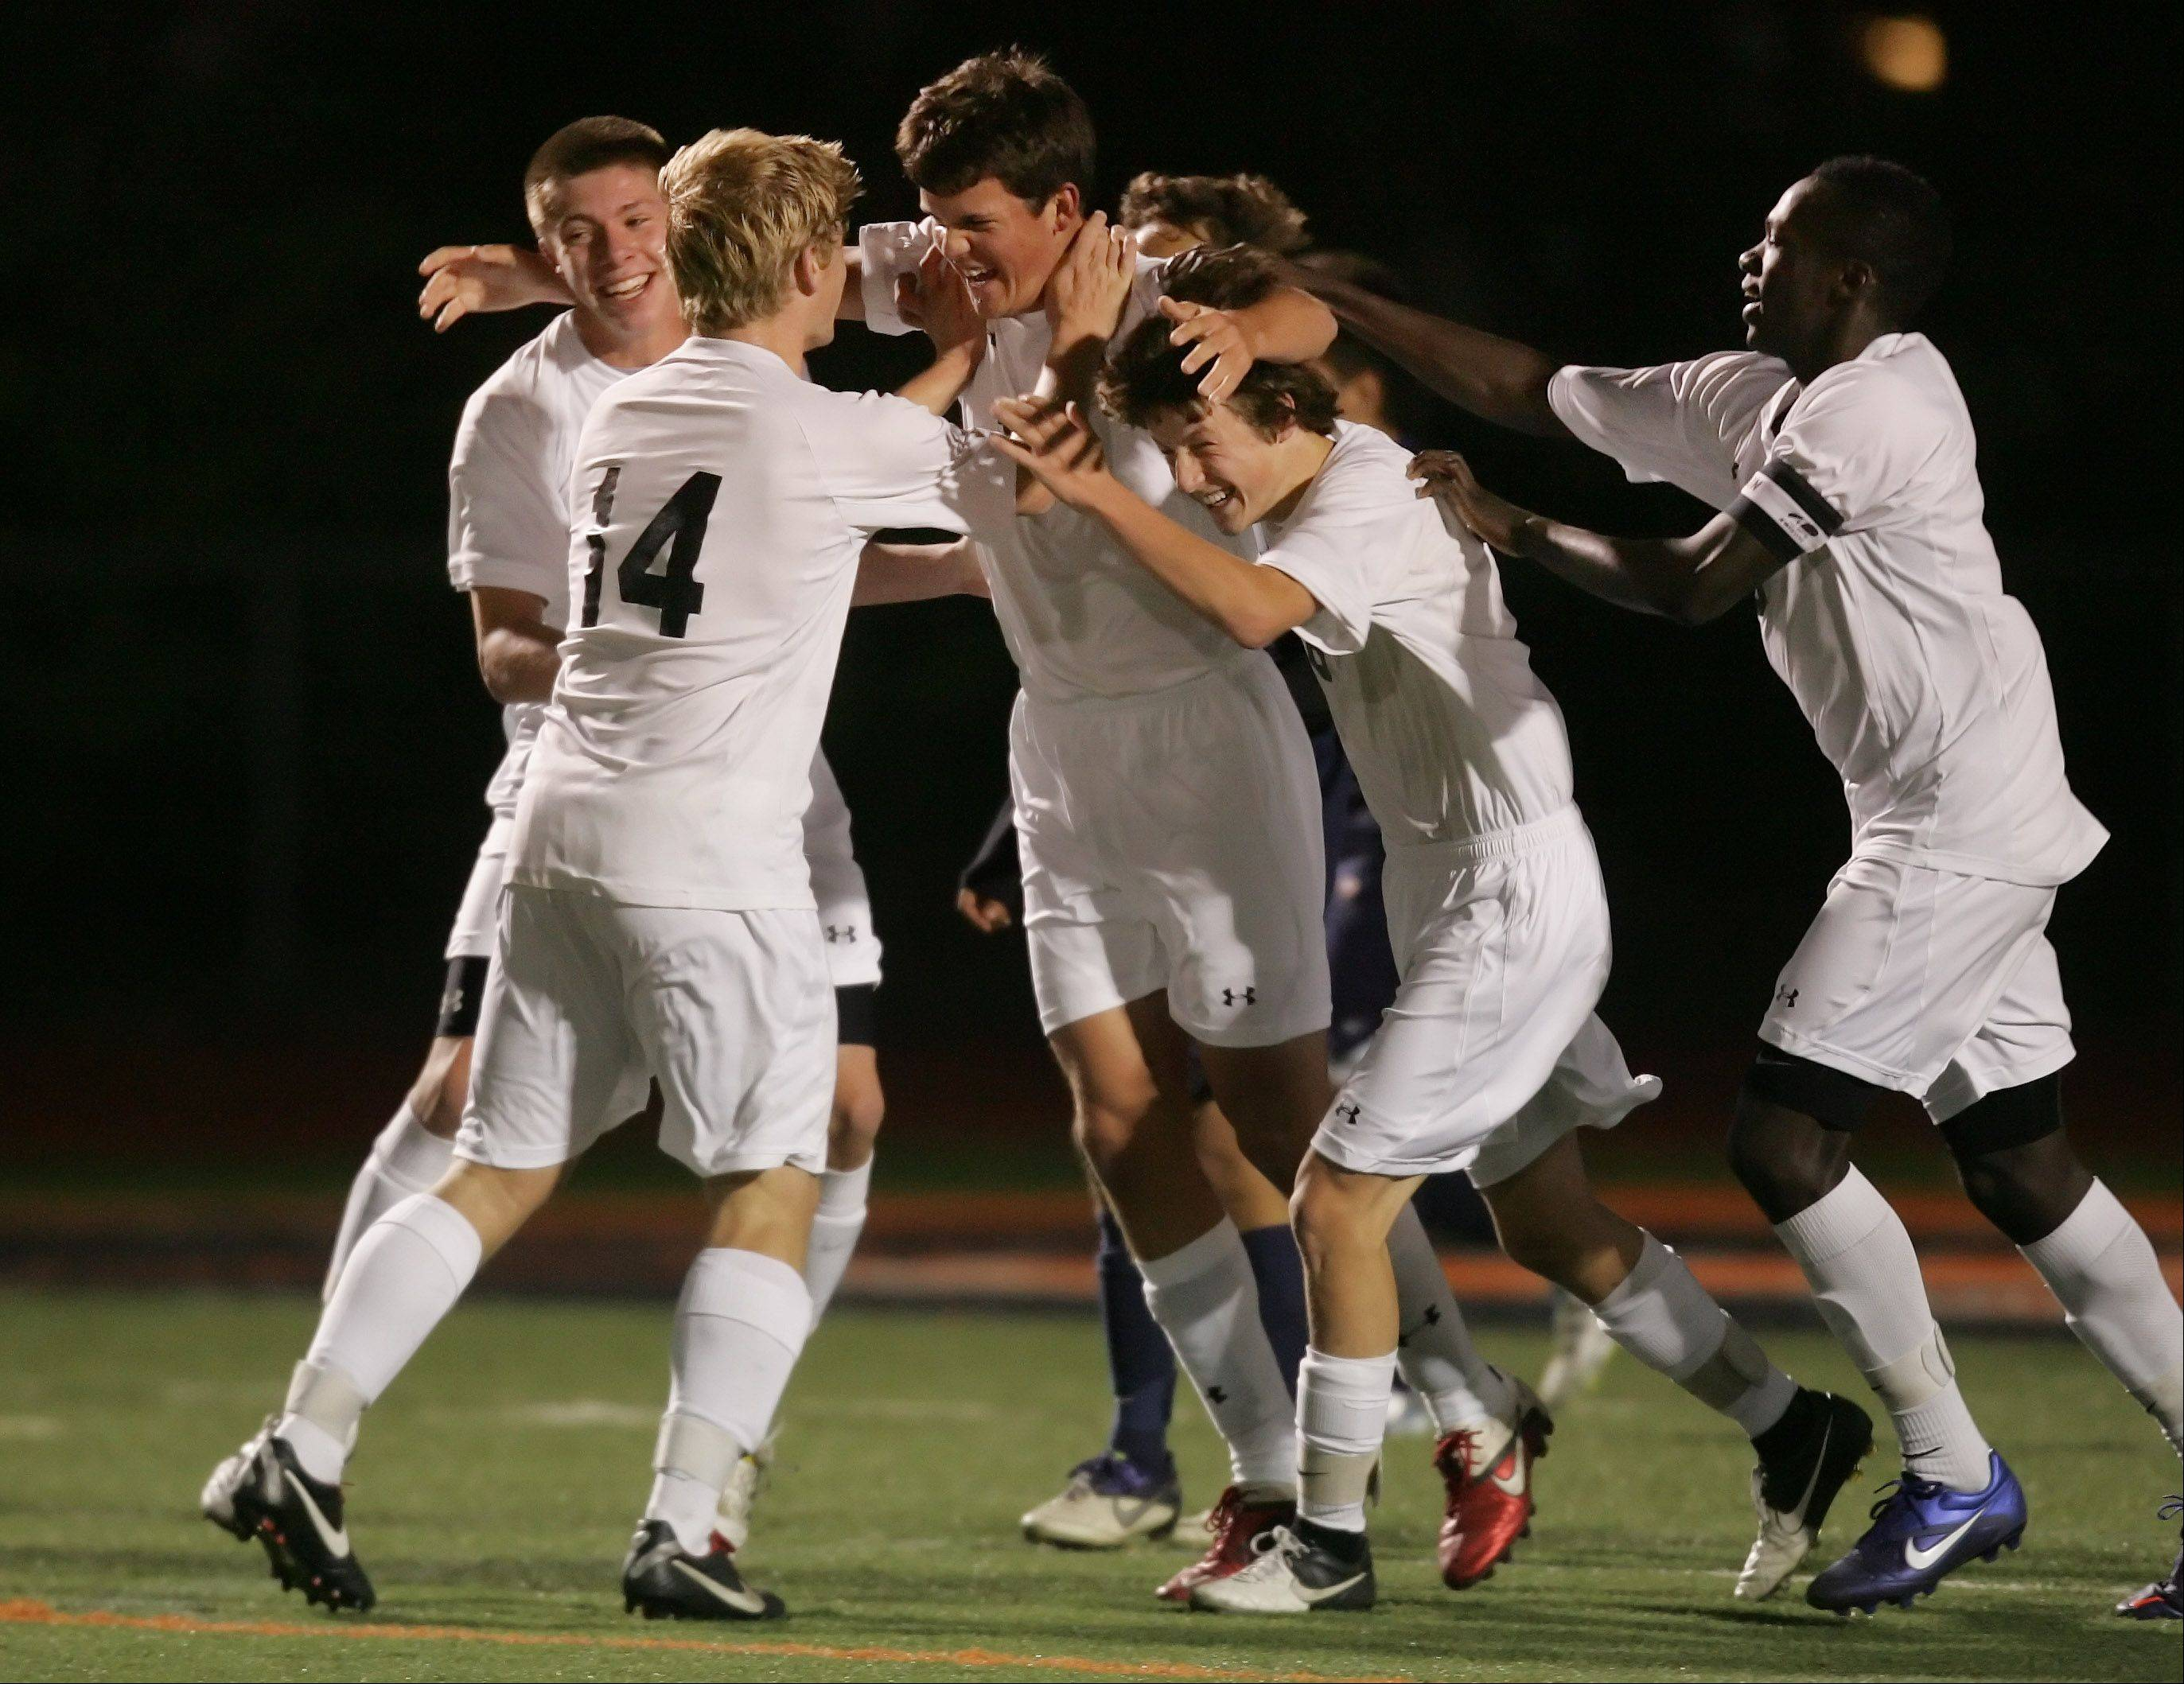 Libertyville players surround Ryan McKenzie, center, after he scored the first goal of the game Thursday in Libertyville.